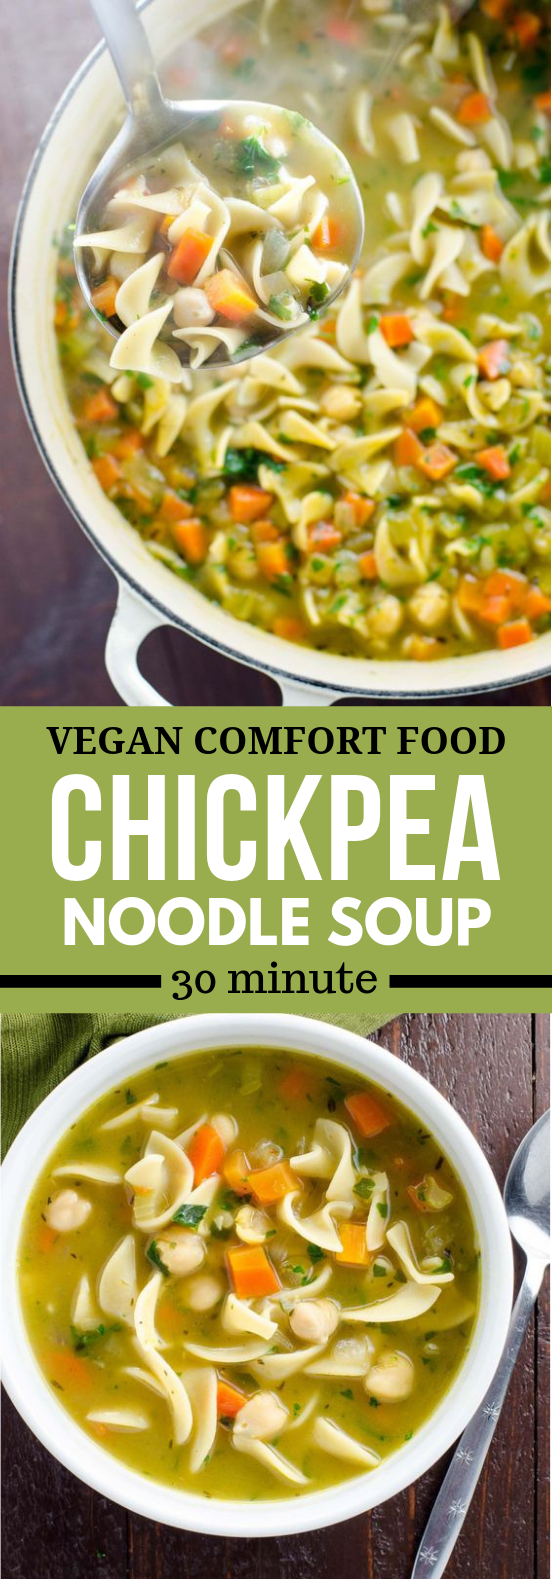 Chickpea Noodle Soup: Vegan Comfort Food #veggies #vegetables #chickpeanoodlesoup